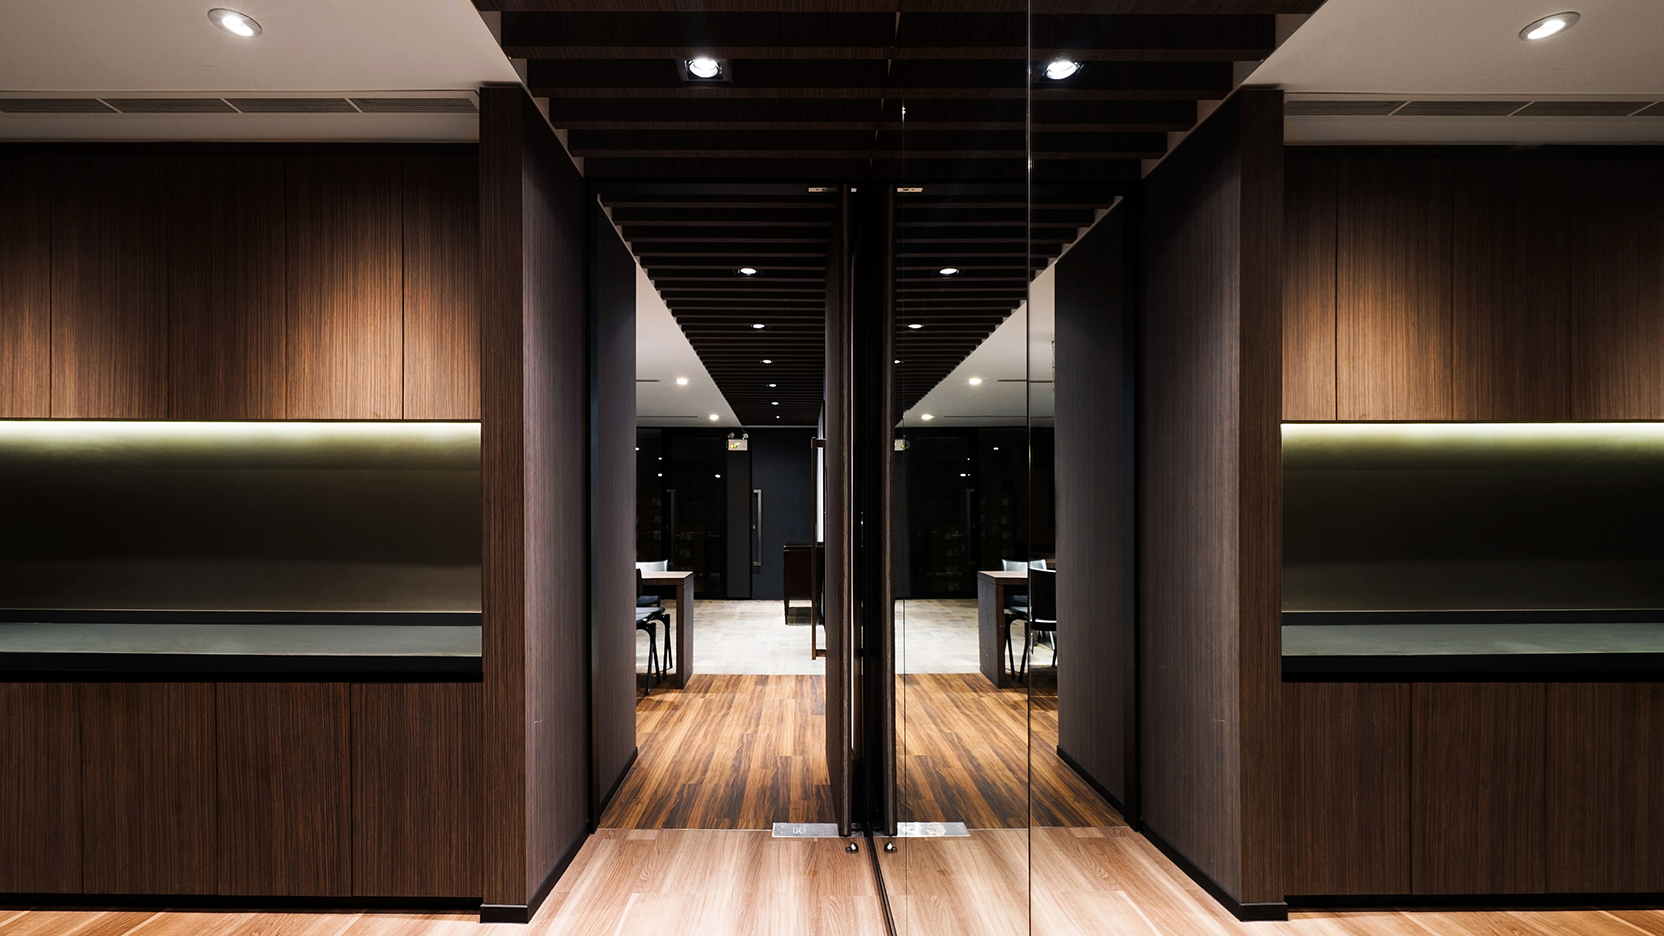 10design Weerawong C&P office interior design law firm 22